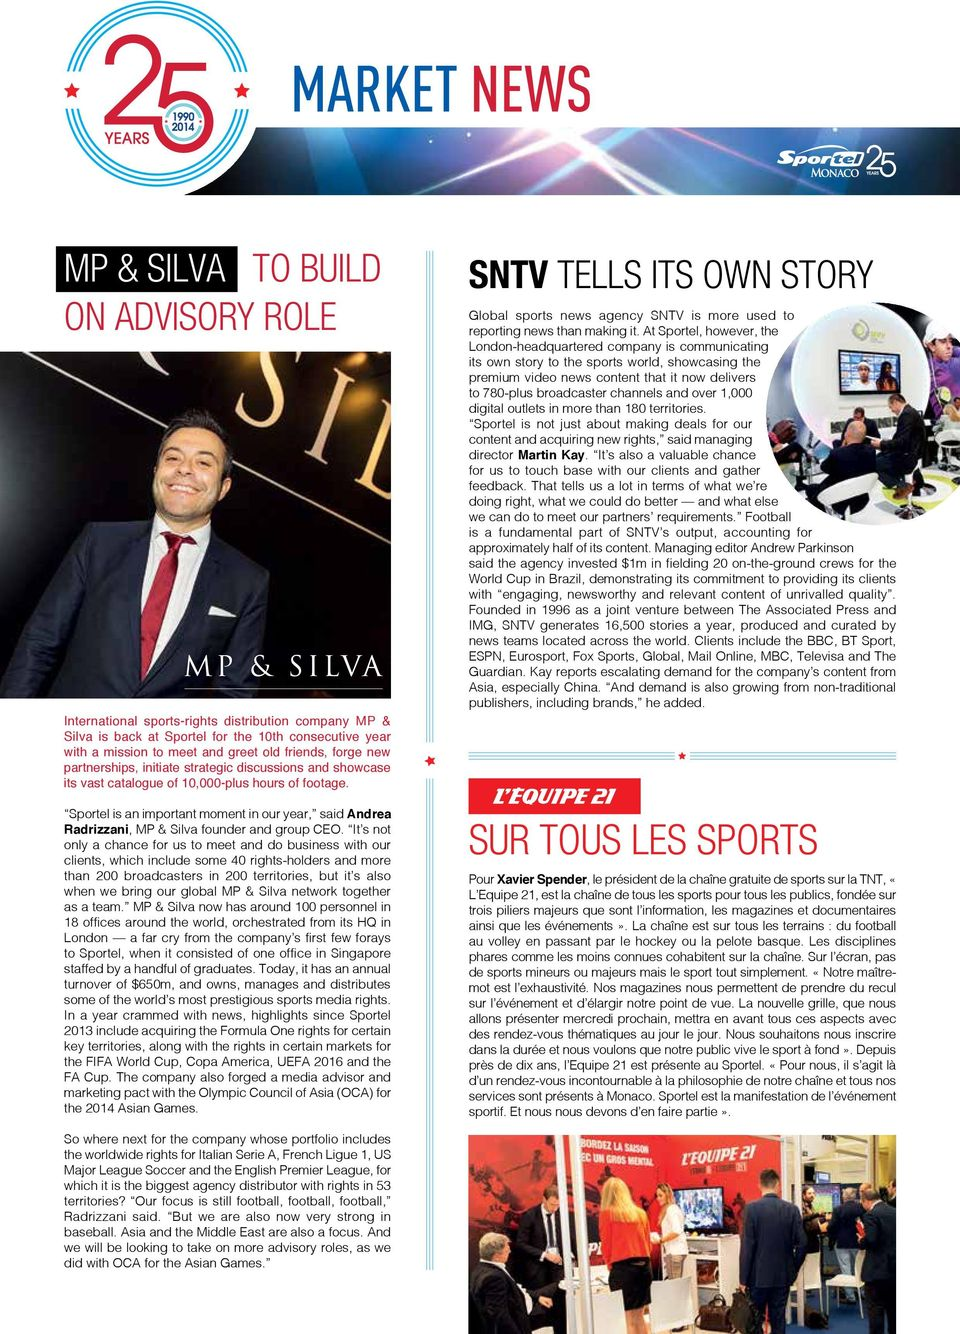 Sportel is an important moment in our year, said Andrea Radrizzani, MP & Silva founder and group CEO.